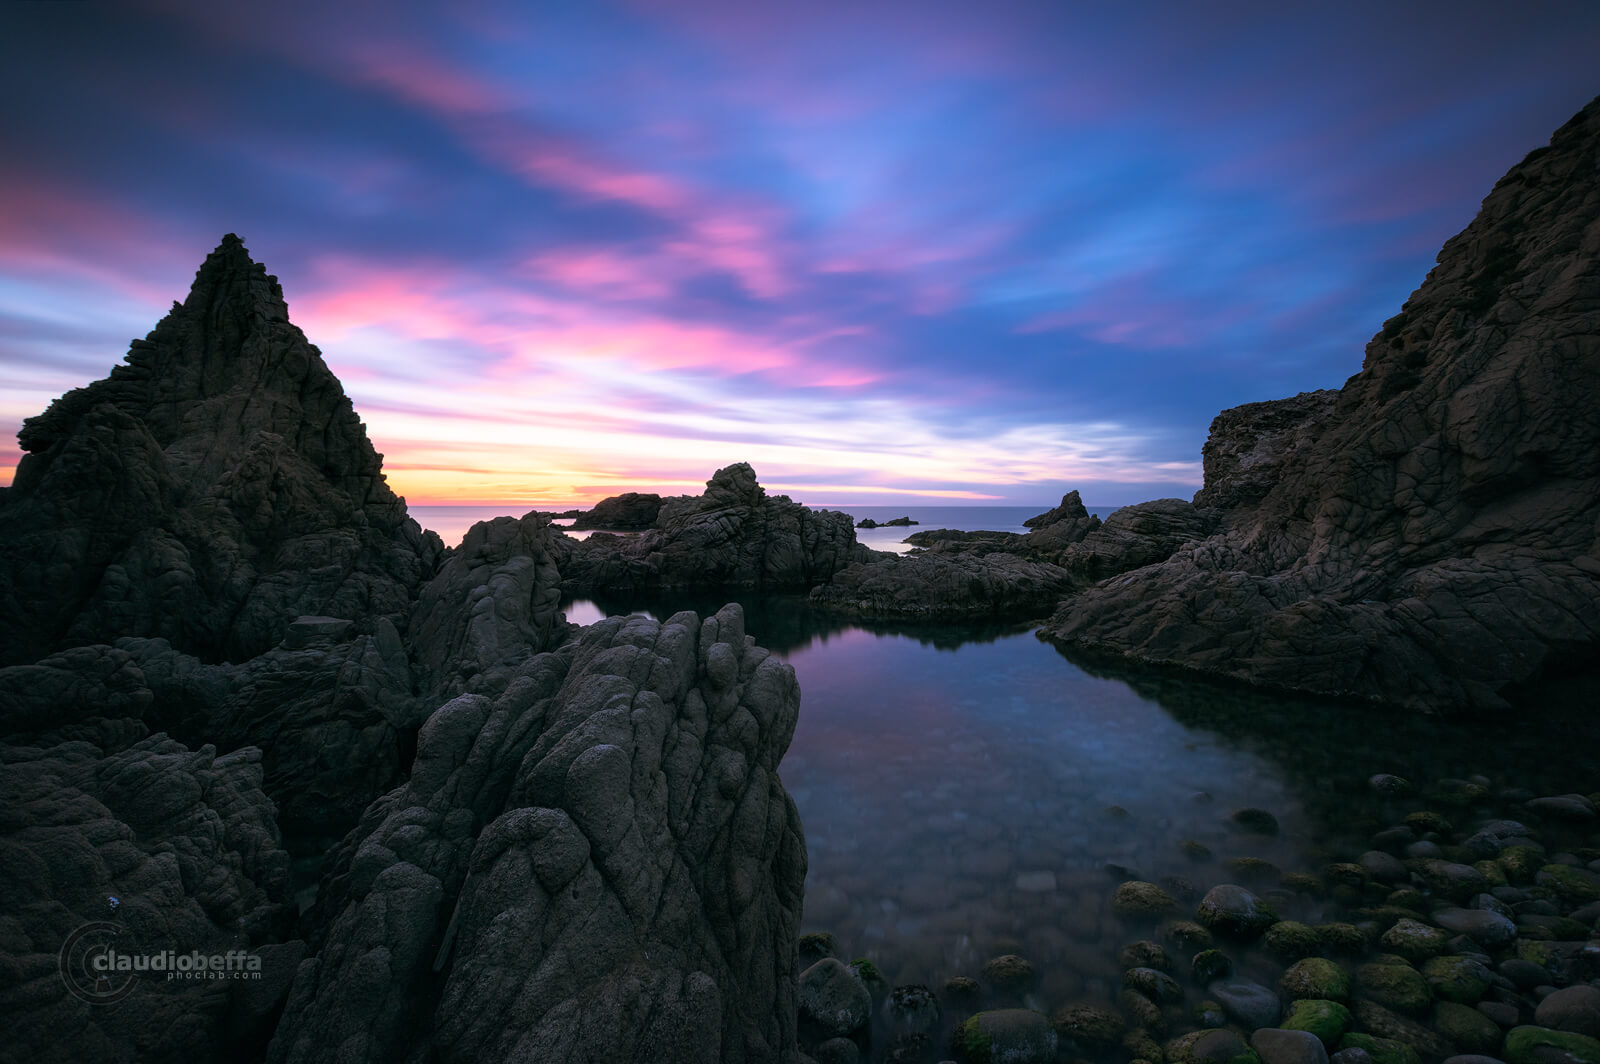 Capo Pecora, Sardinia, Italy, Sea, Seascape, Sunset, Blue hour, Cove, Shore, Pebbles, Rocks, Long exposure